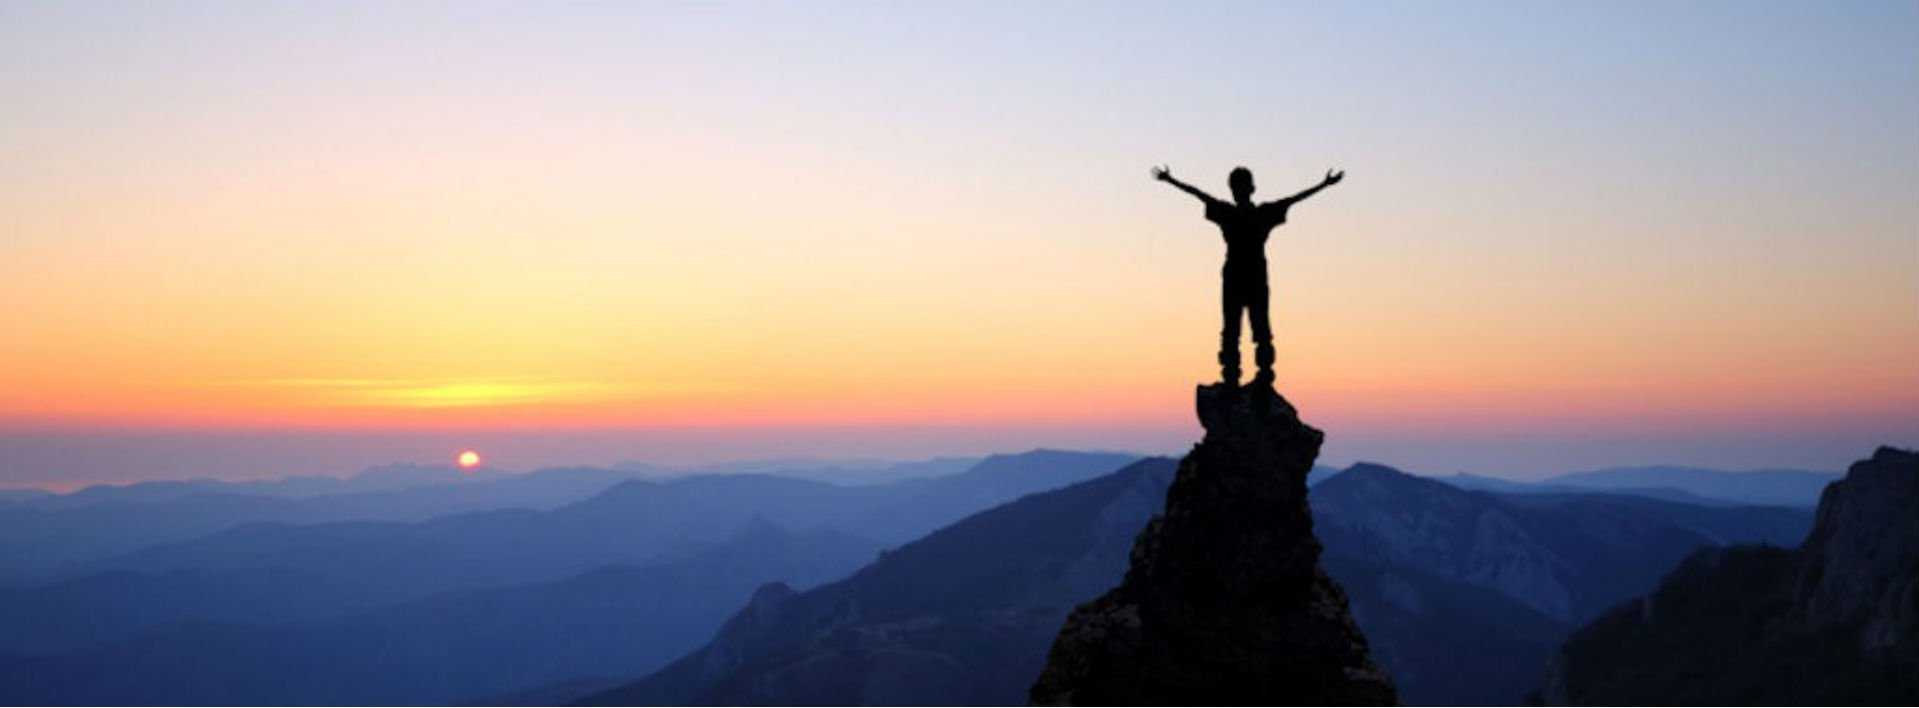 Man standing on mountain top looking over a sunset, words of possibility